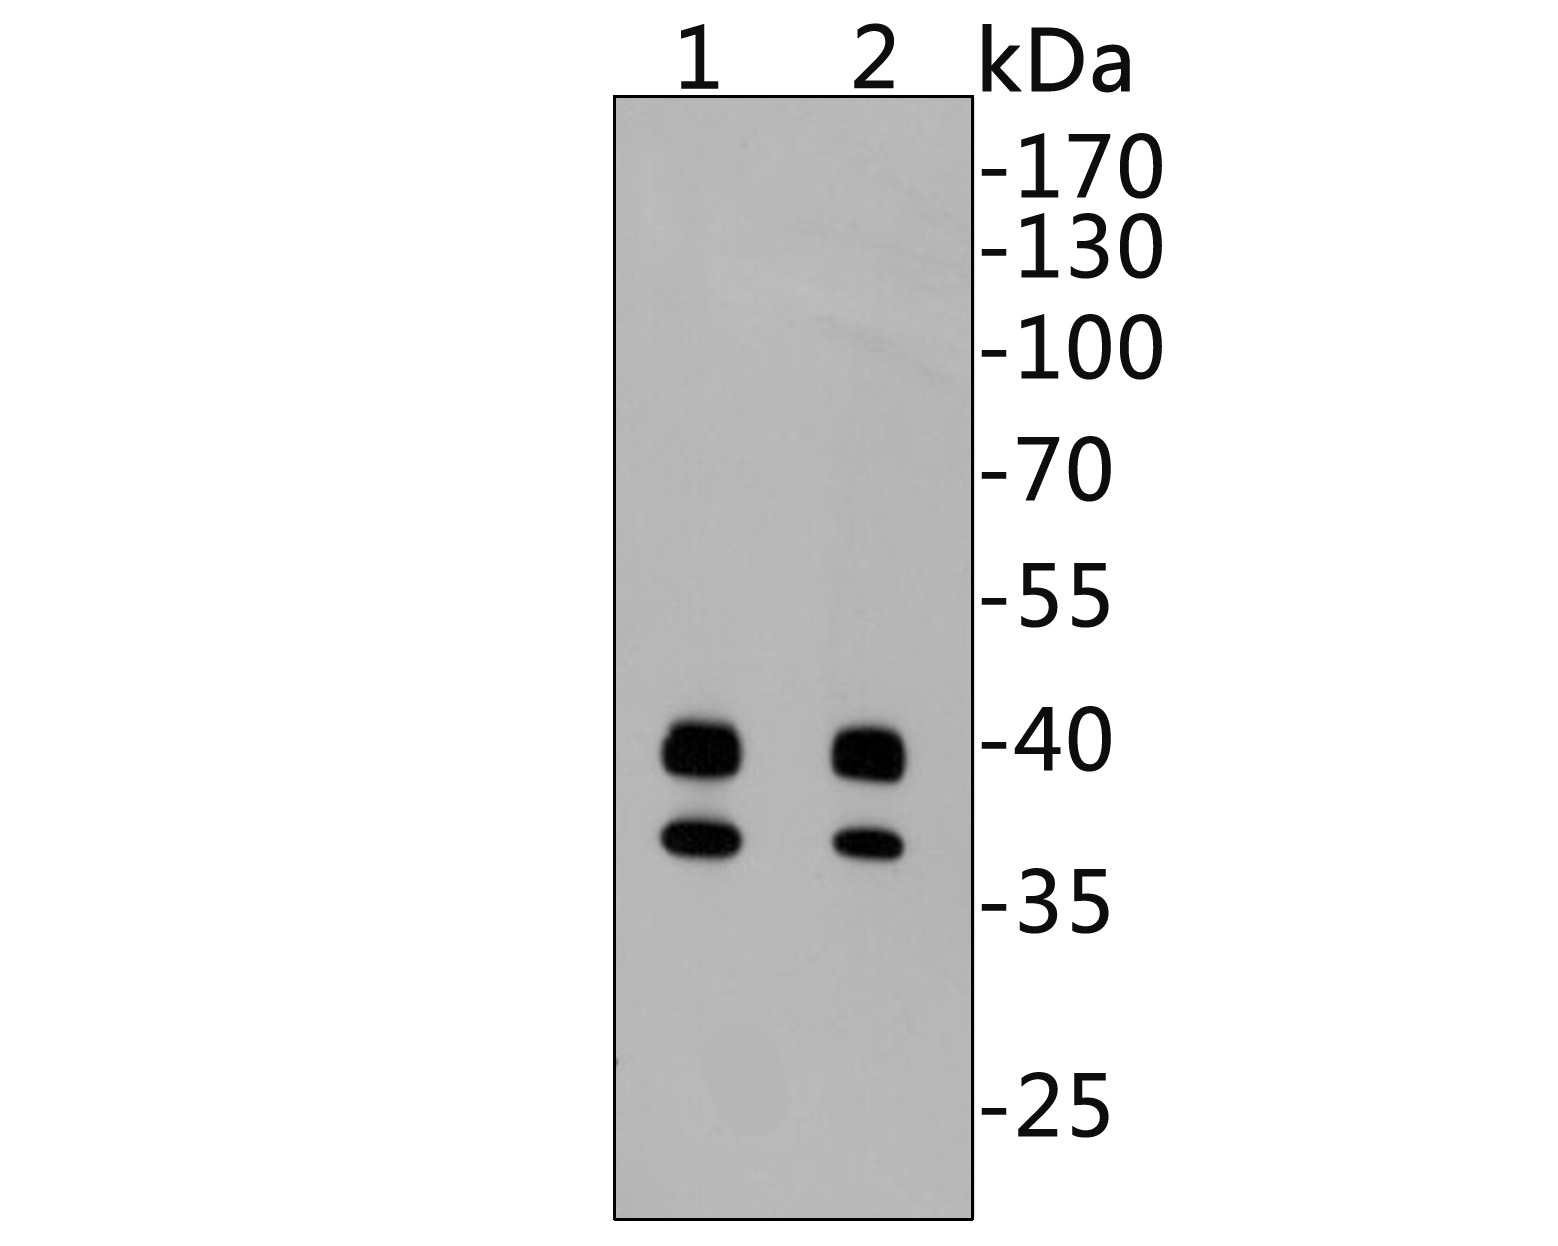 Western blot analysis on Hela cell lysates using anti-Caspase-9 rabbit polyclonal antibodies with Dilution at 1:500 (1) and 1:1000 (2).